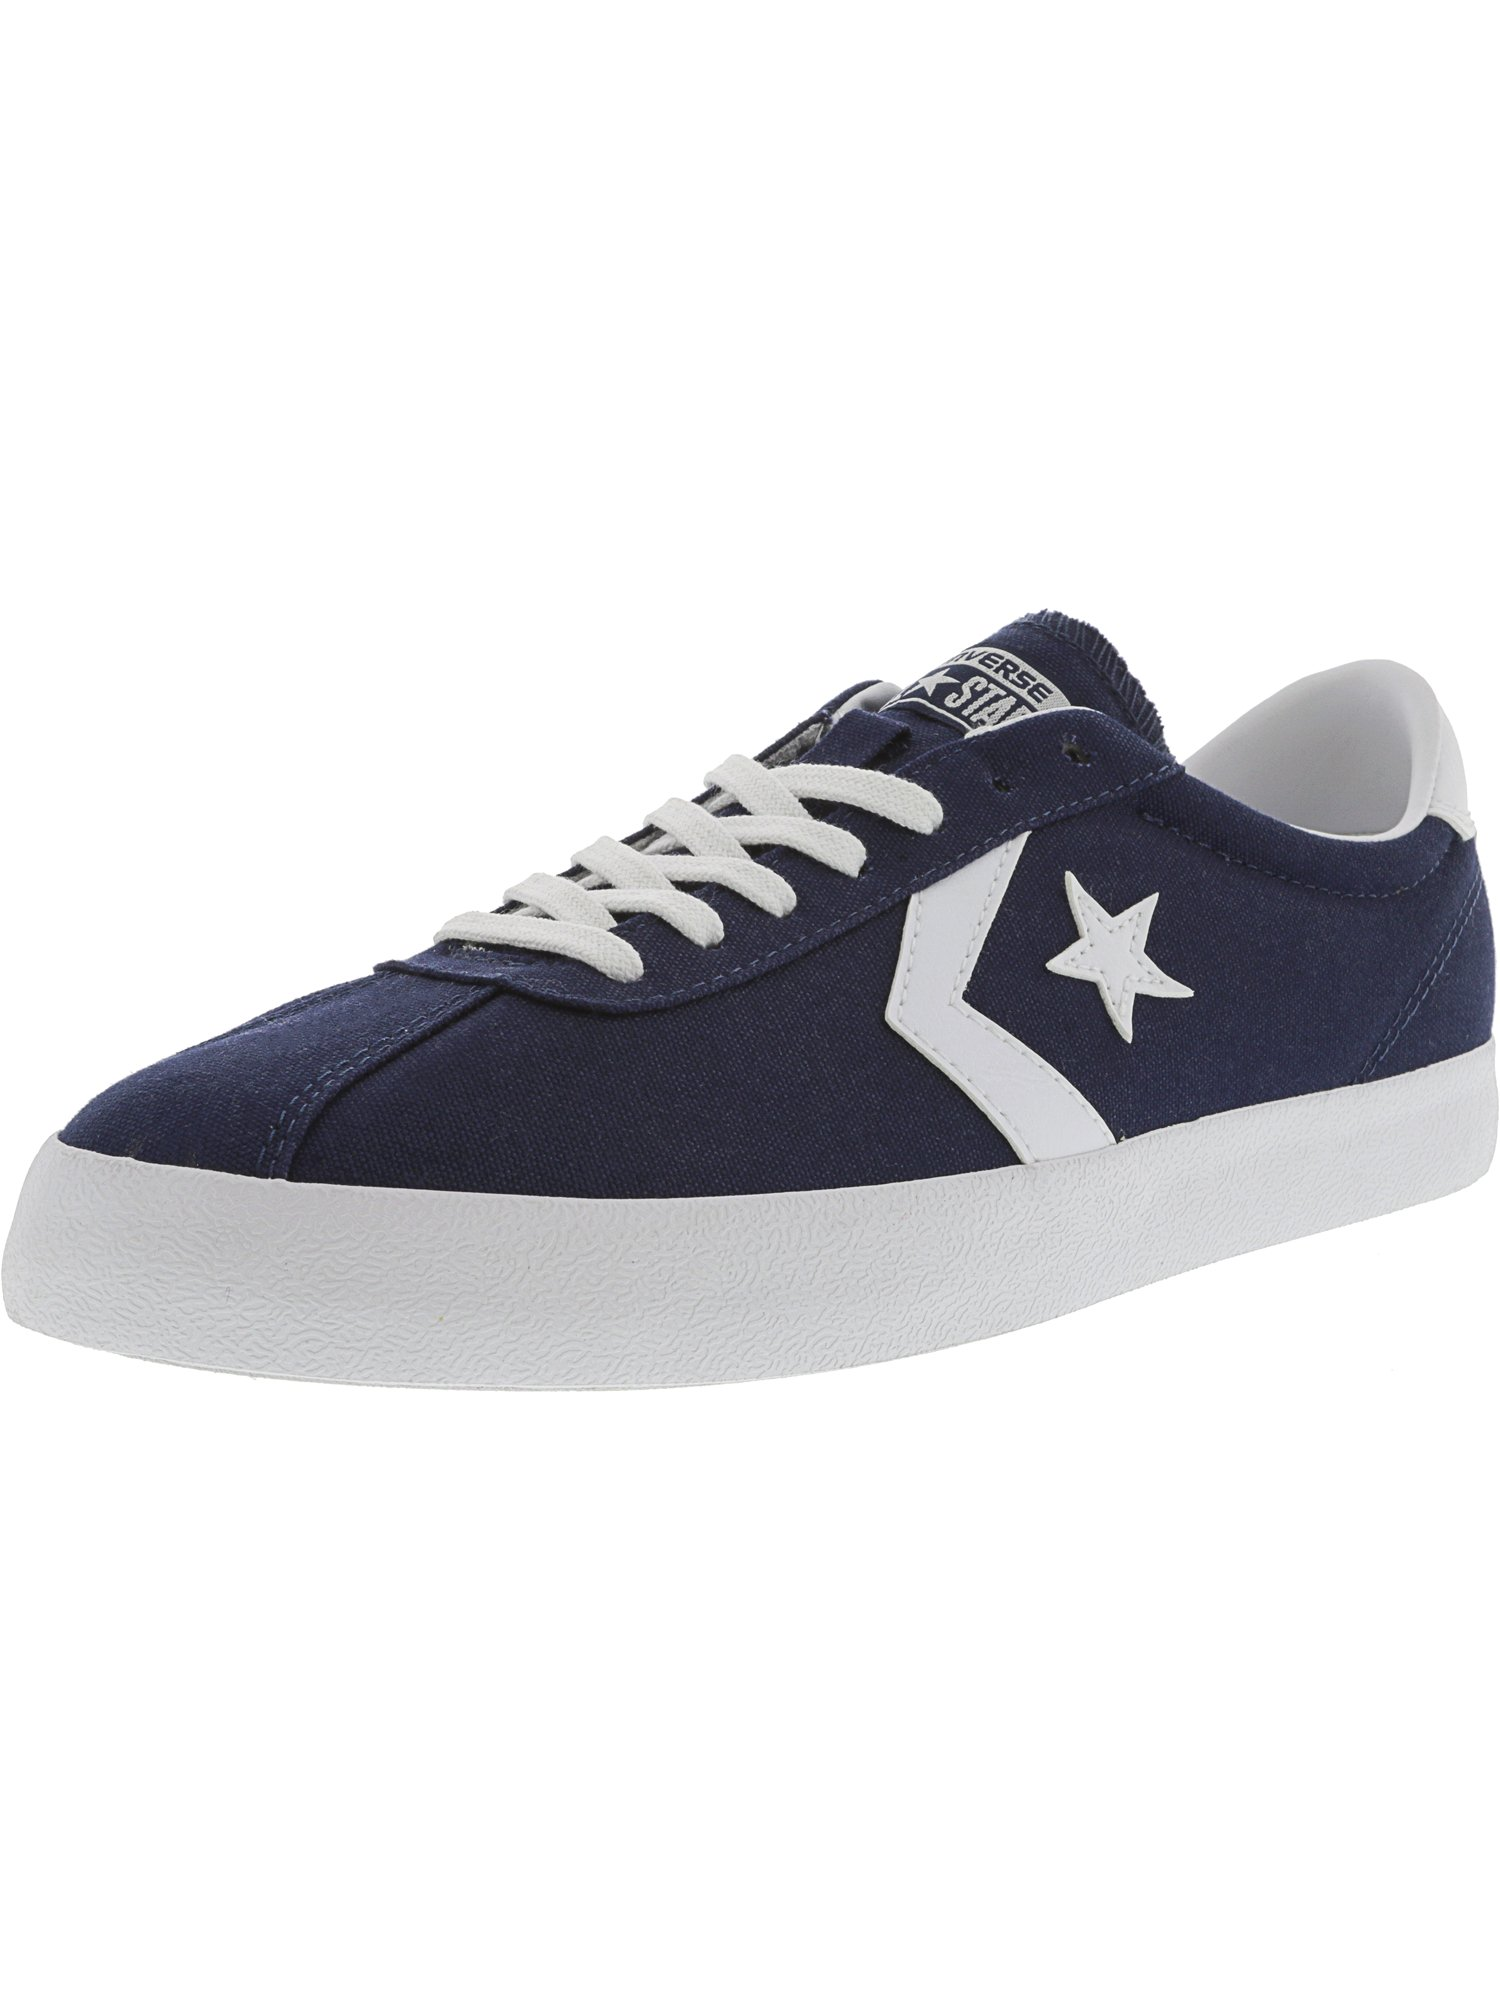 Converse Breakpoint Ox Midnight Navy   White Ankle-High Fashion Sneaker 11M 9.5M by Converse